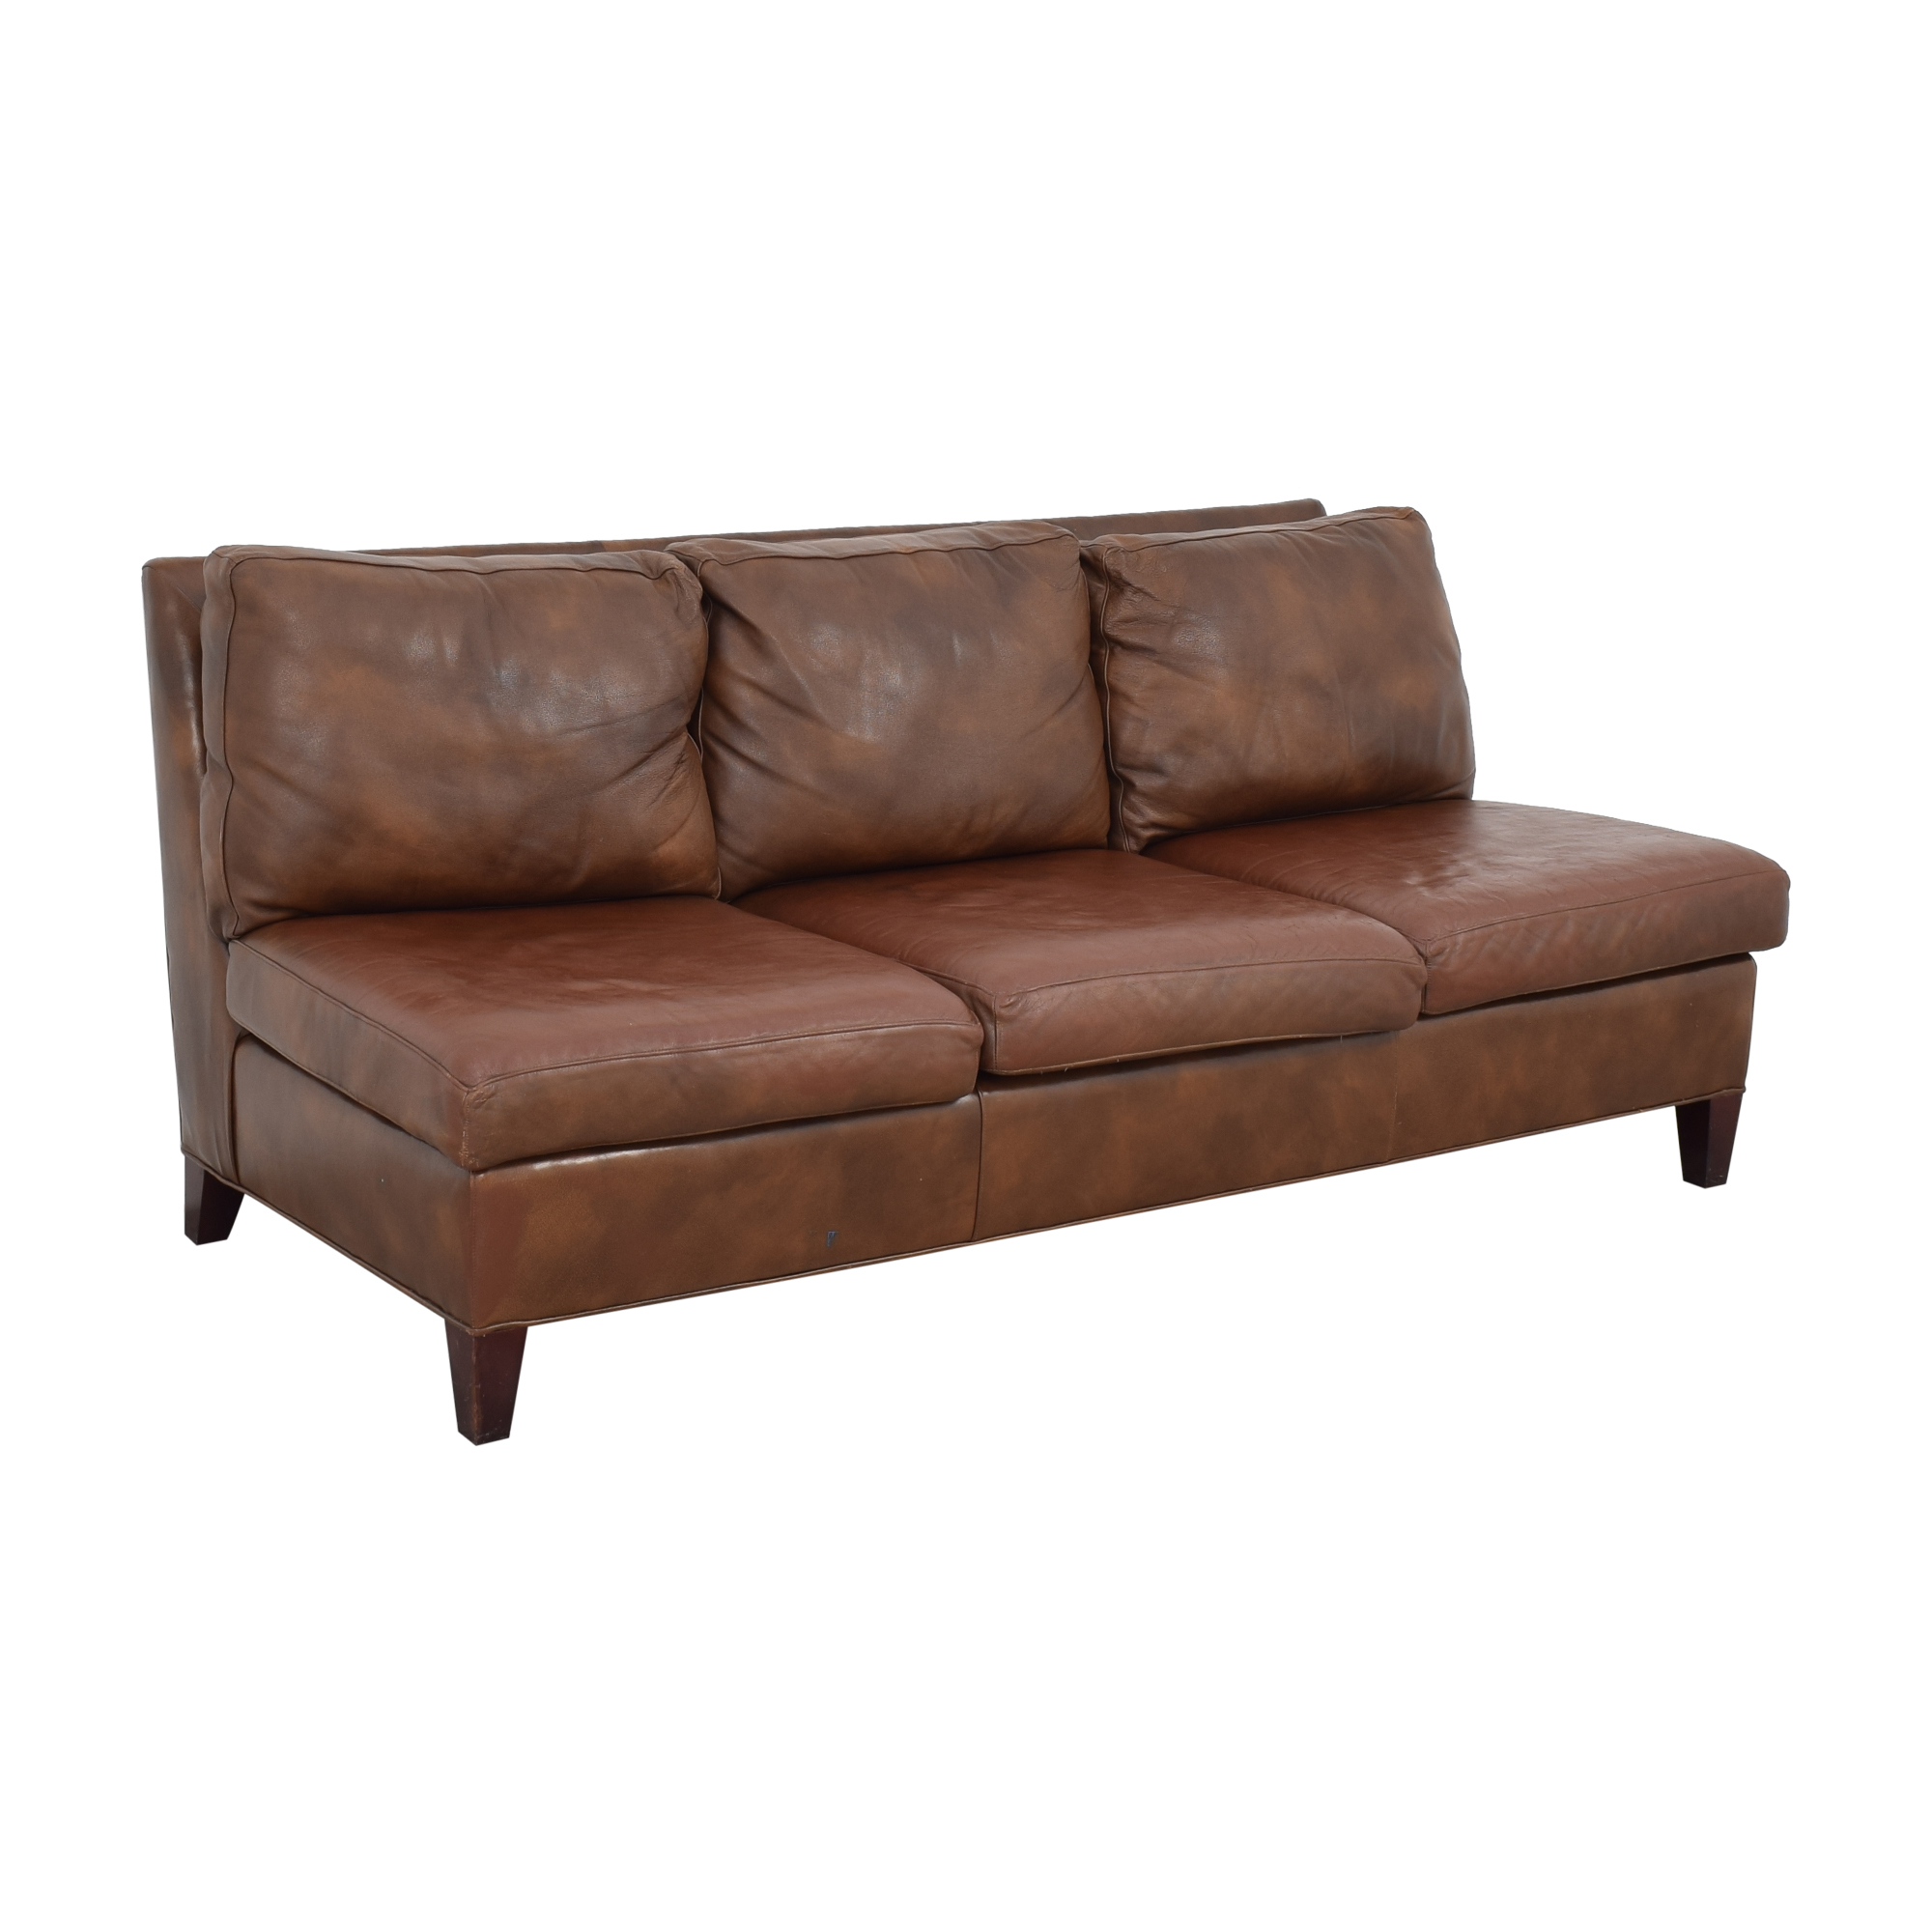 76 Off Mckinley Leather Furniture